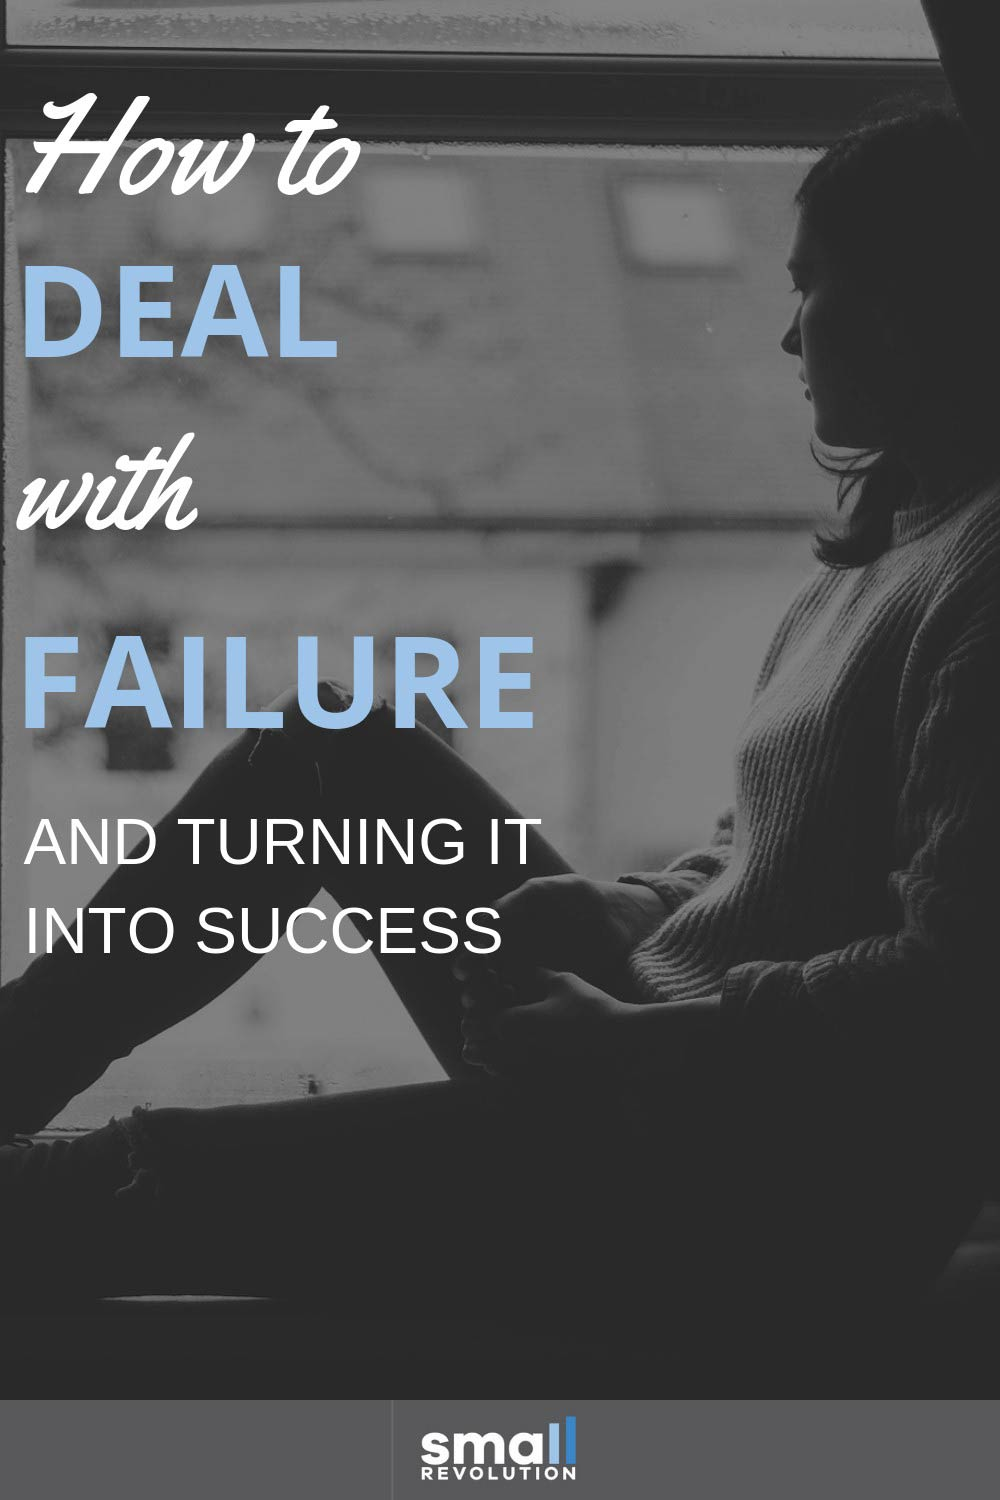 How to deal with failure and turning it into success